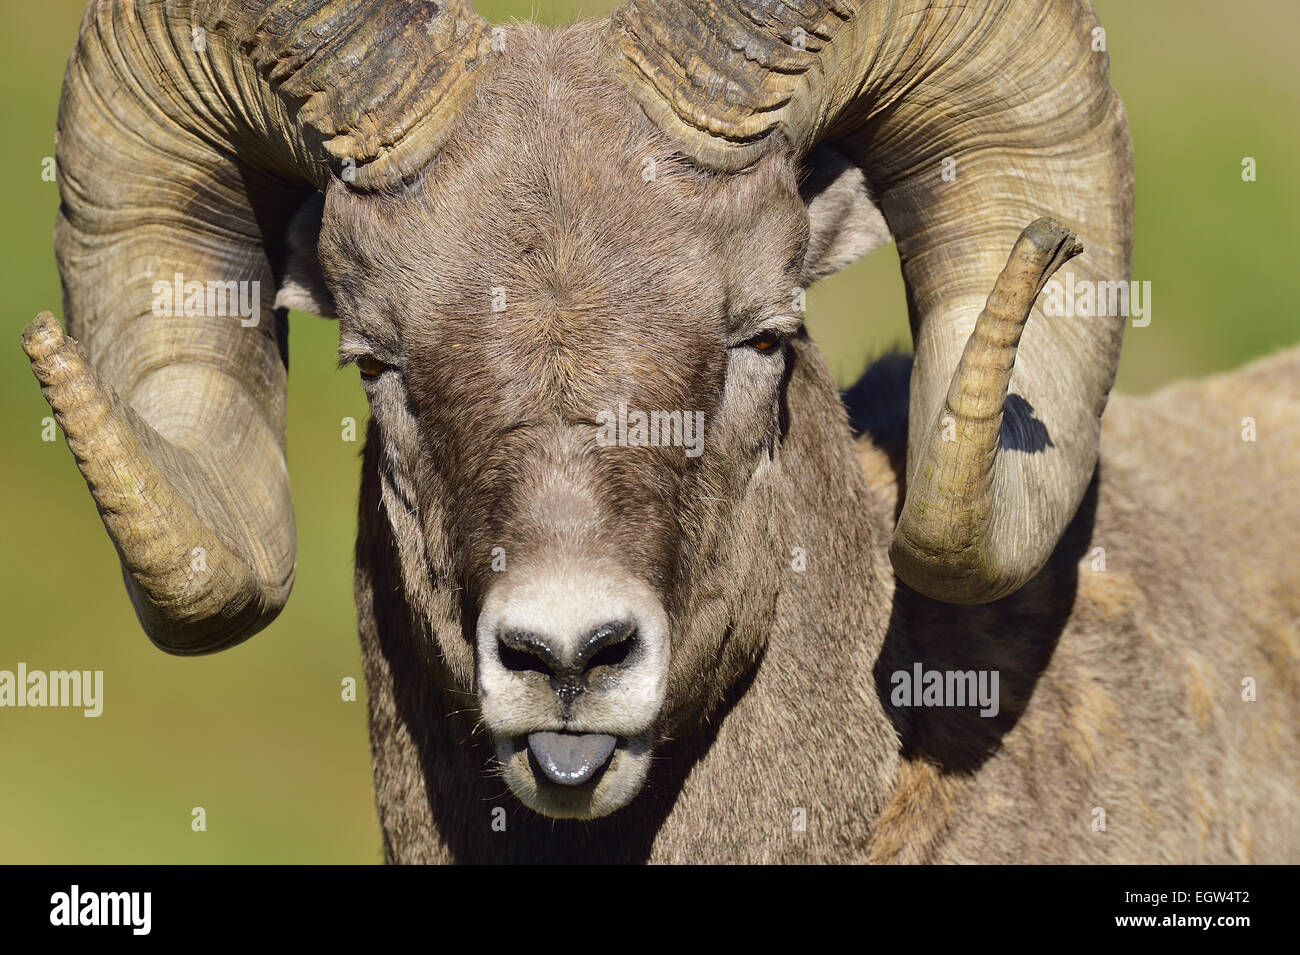 A close up funny looking portrait of a bighorn ram  Orvis canadensis, - Stock Image